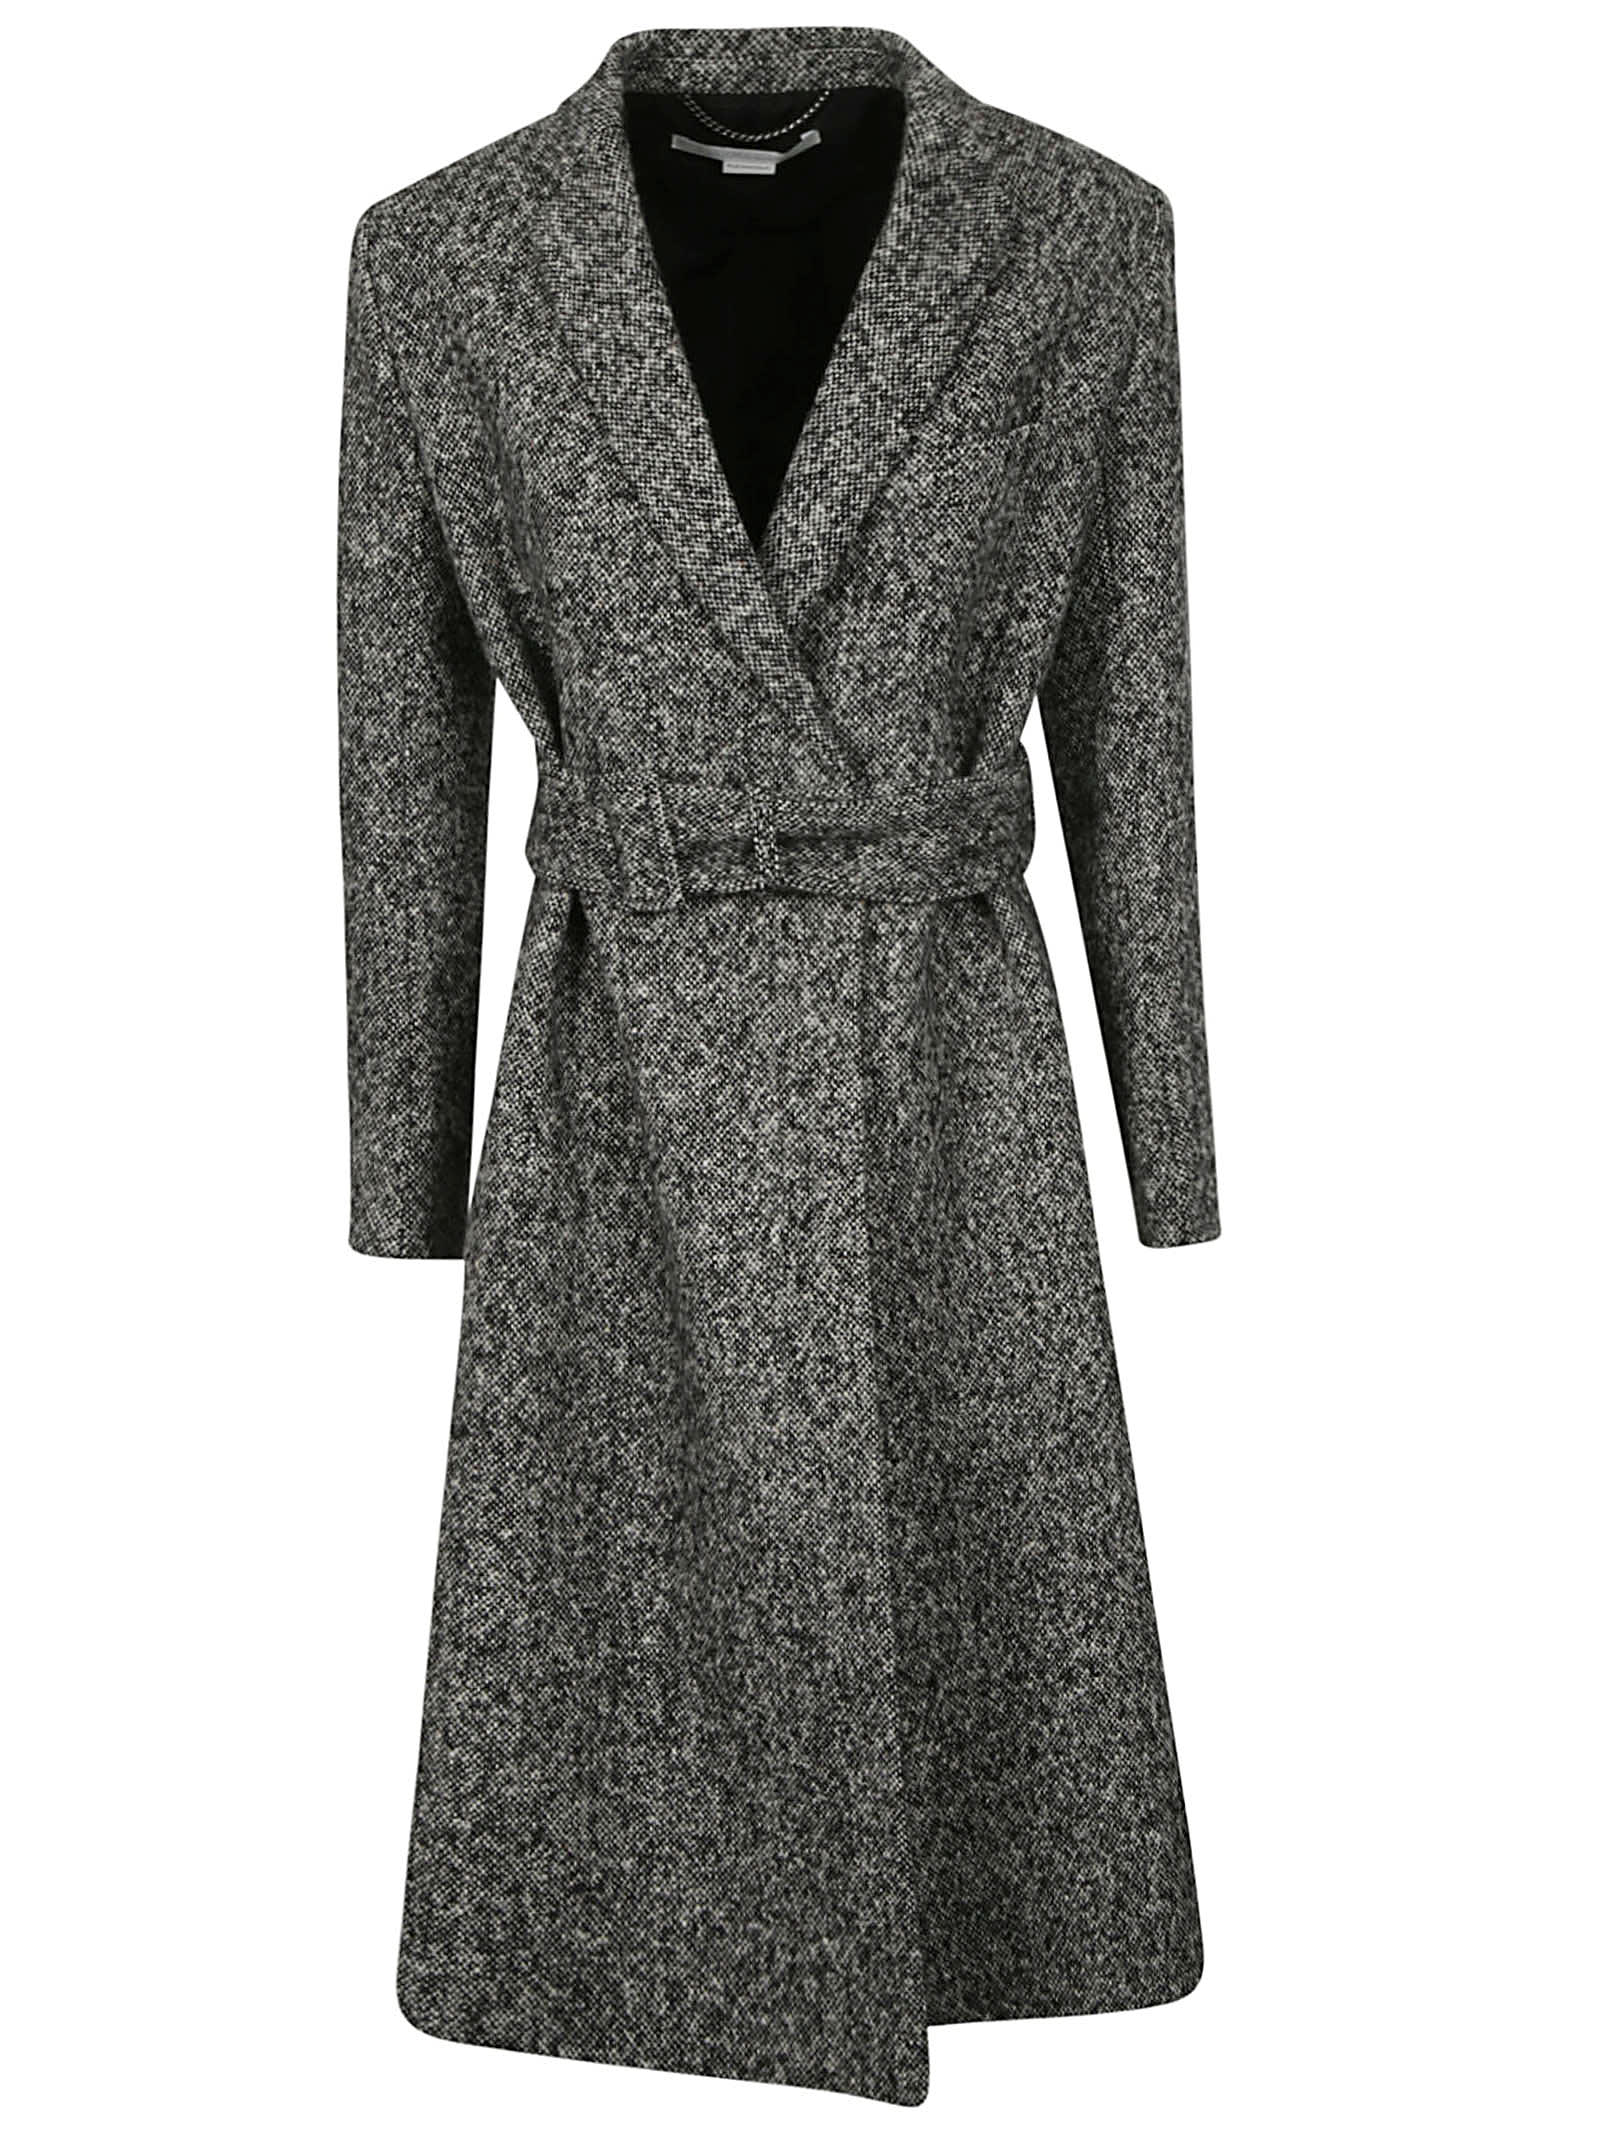 Stella McCartney Salt Pepper Tailoring Coat